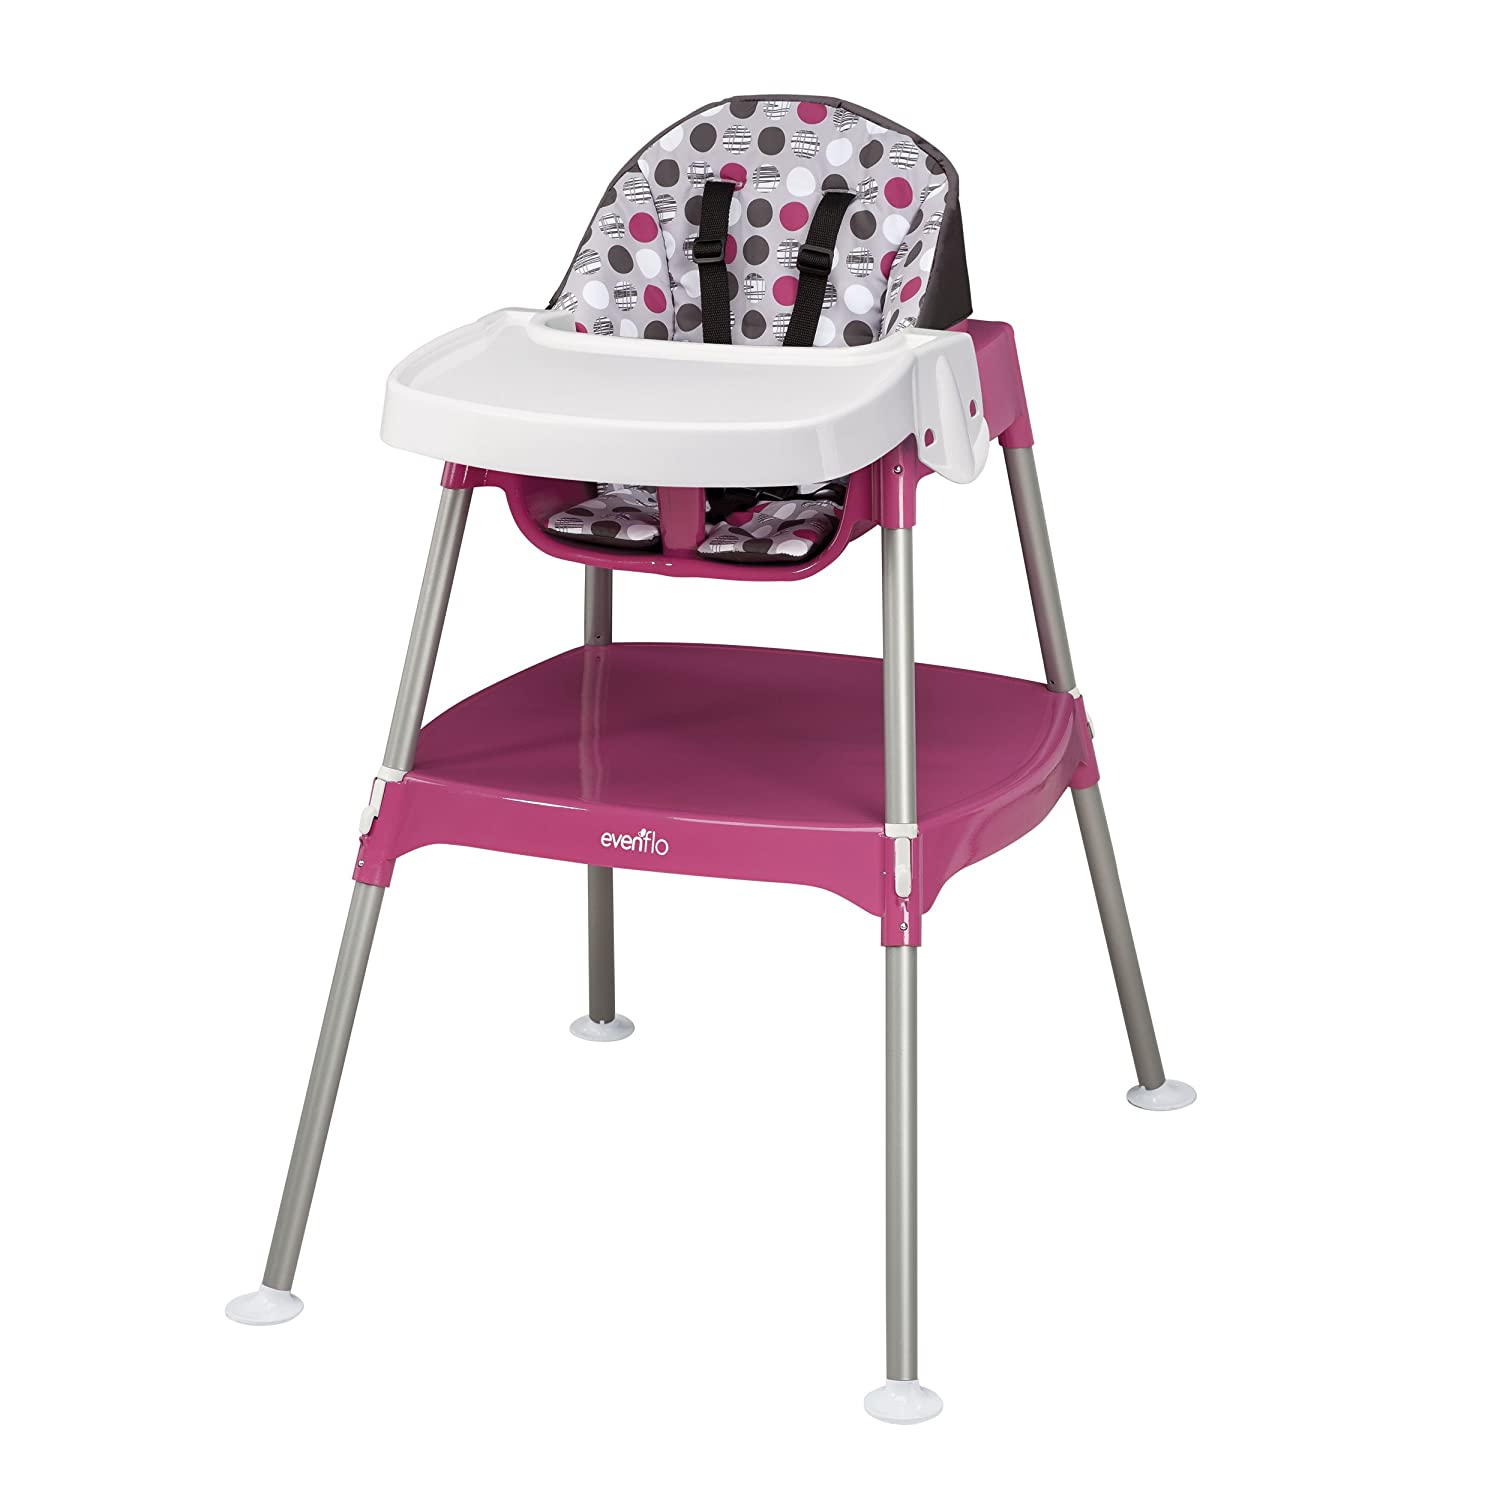 Charmant Amazon.com : Evenflo Convertible High Chair, Dottie Rose : Childrens  Highchairs : Baby